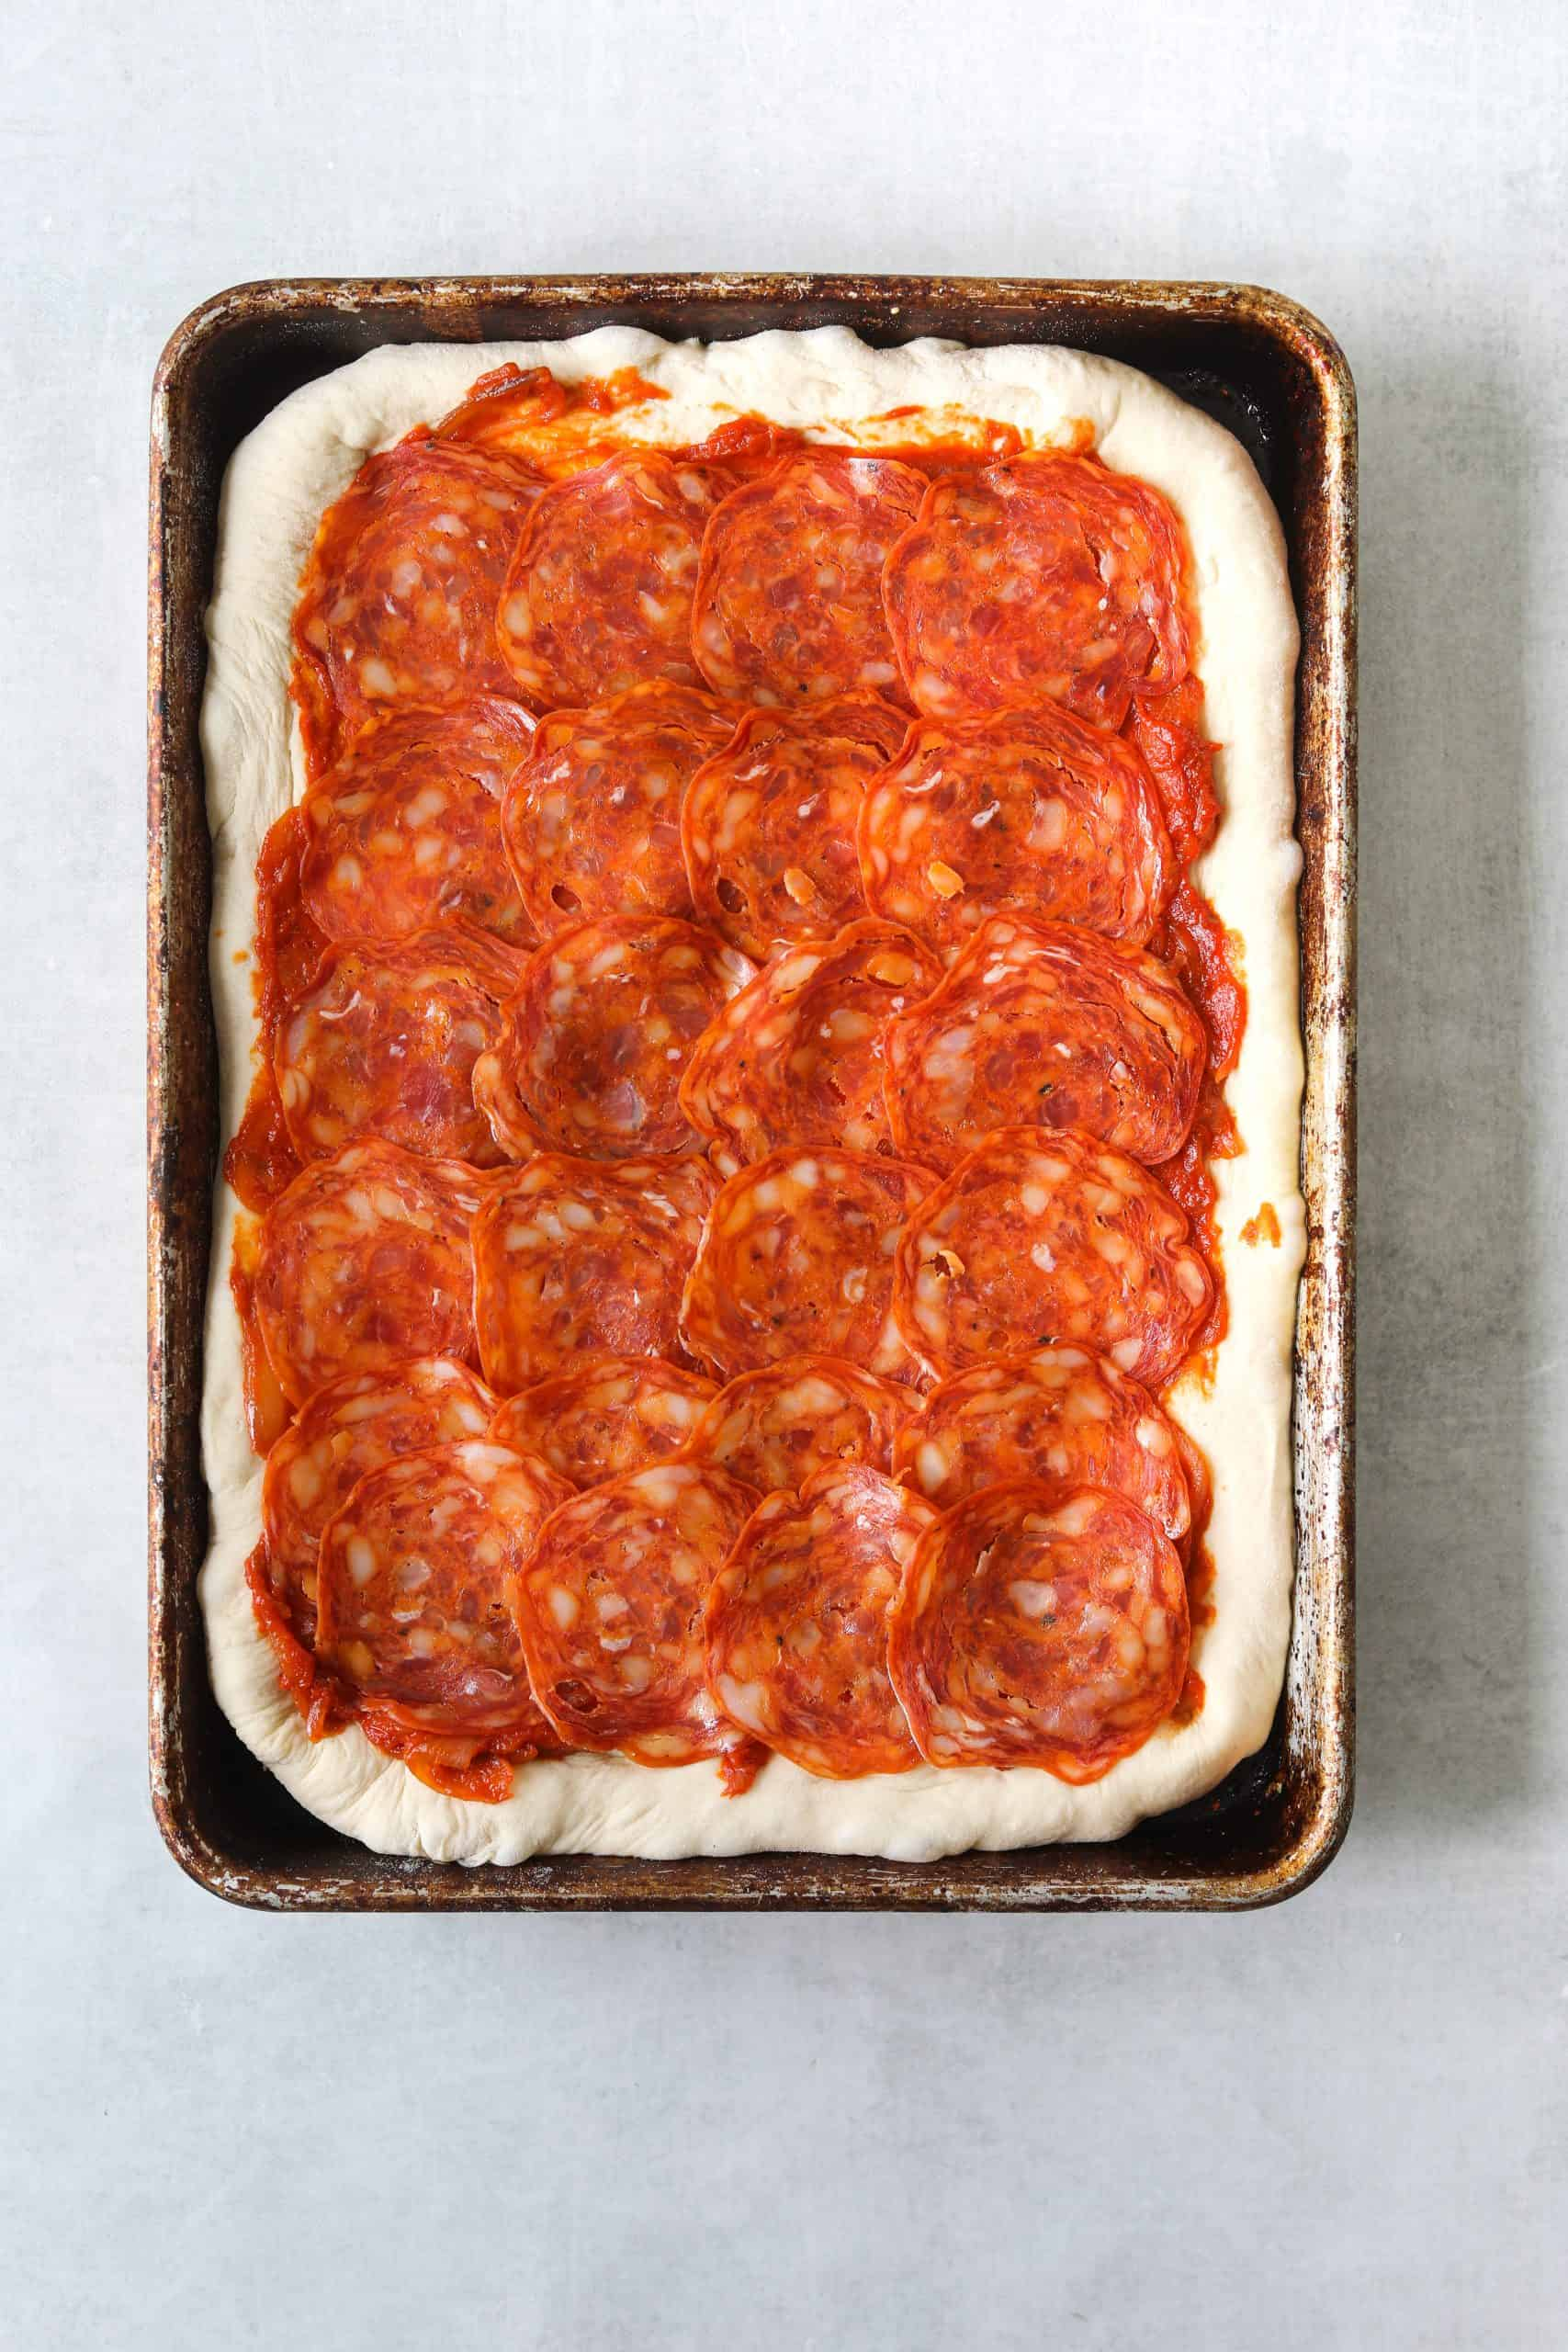 an uncooked rectangle pizza on a sheet pan topped with soppressata